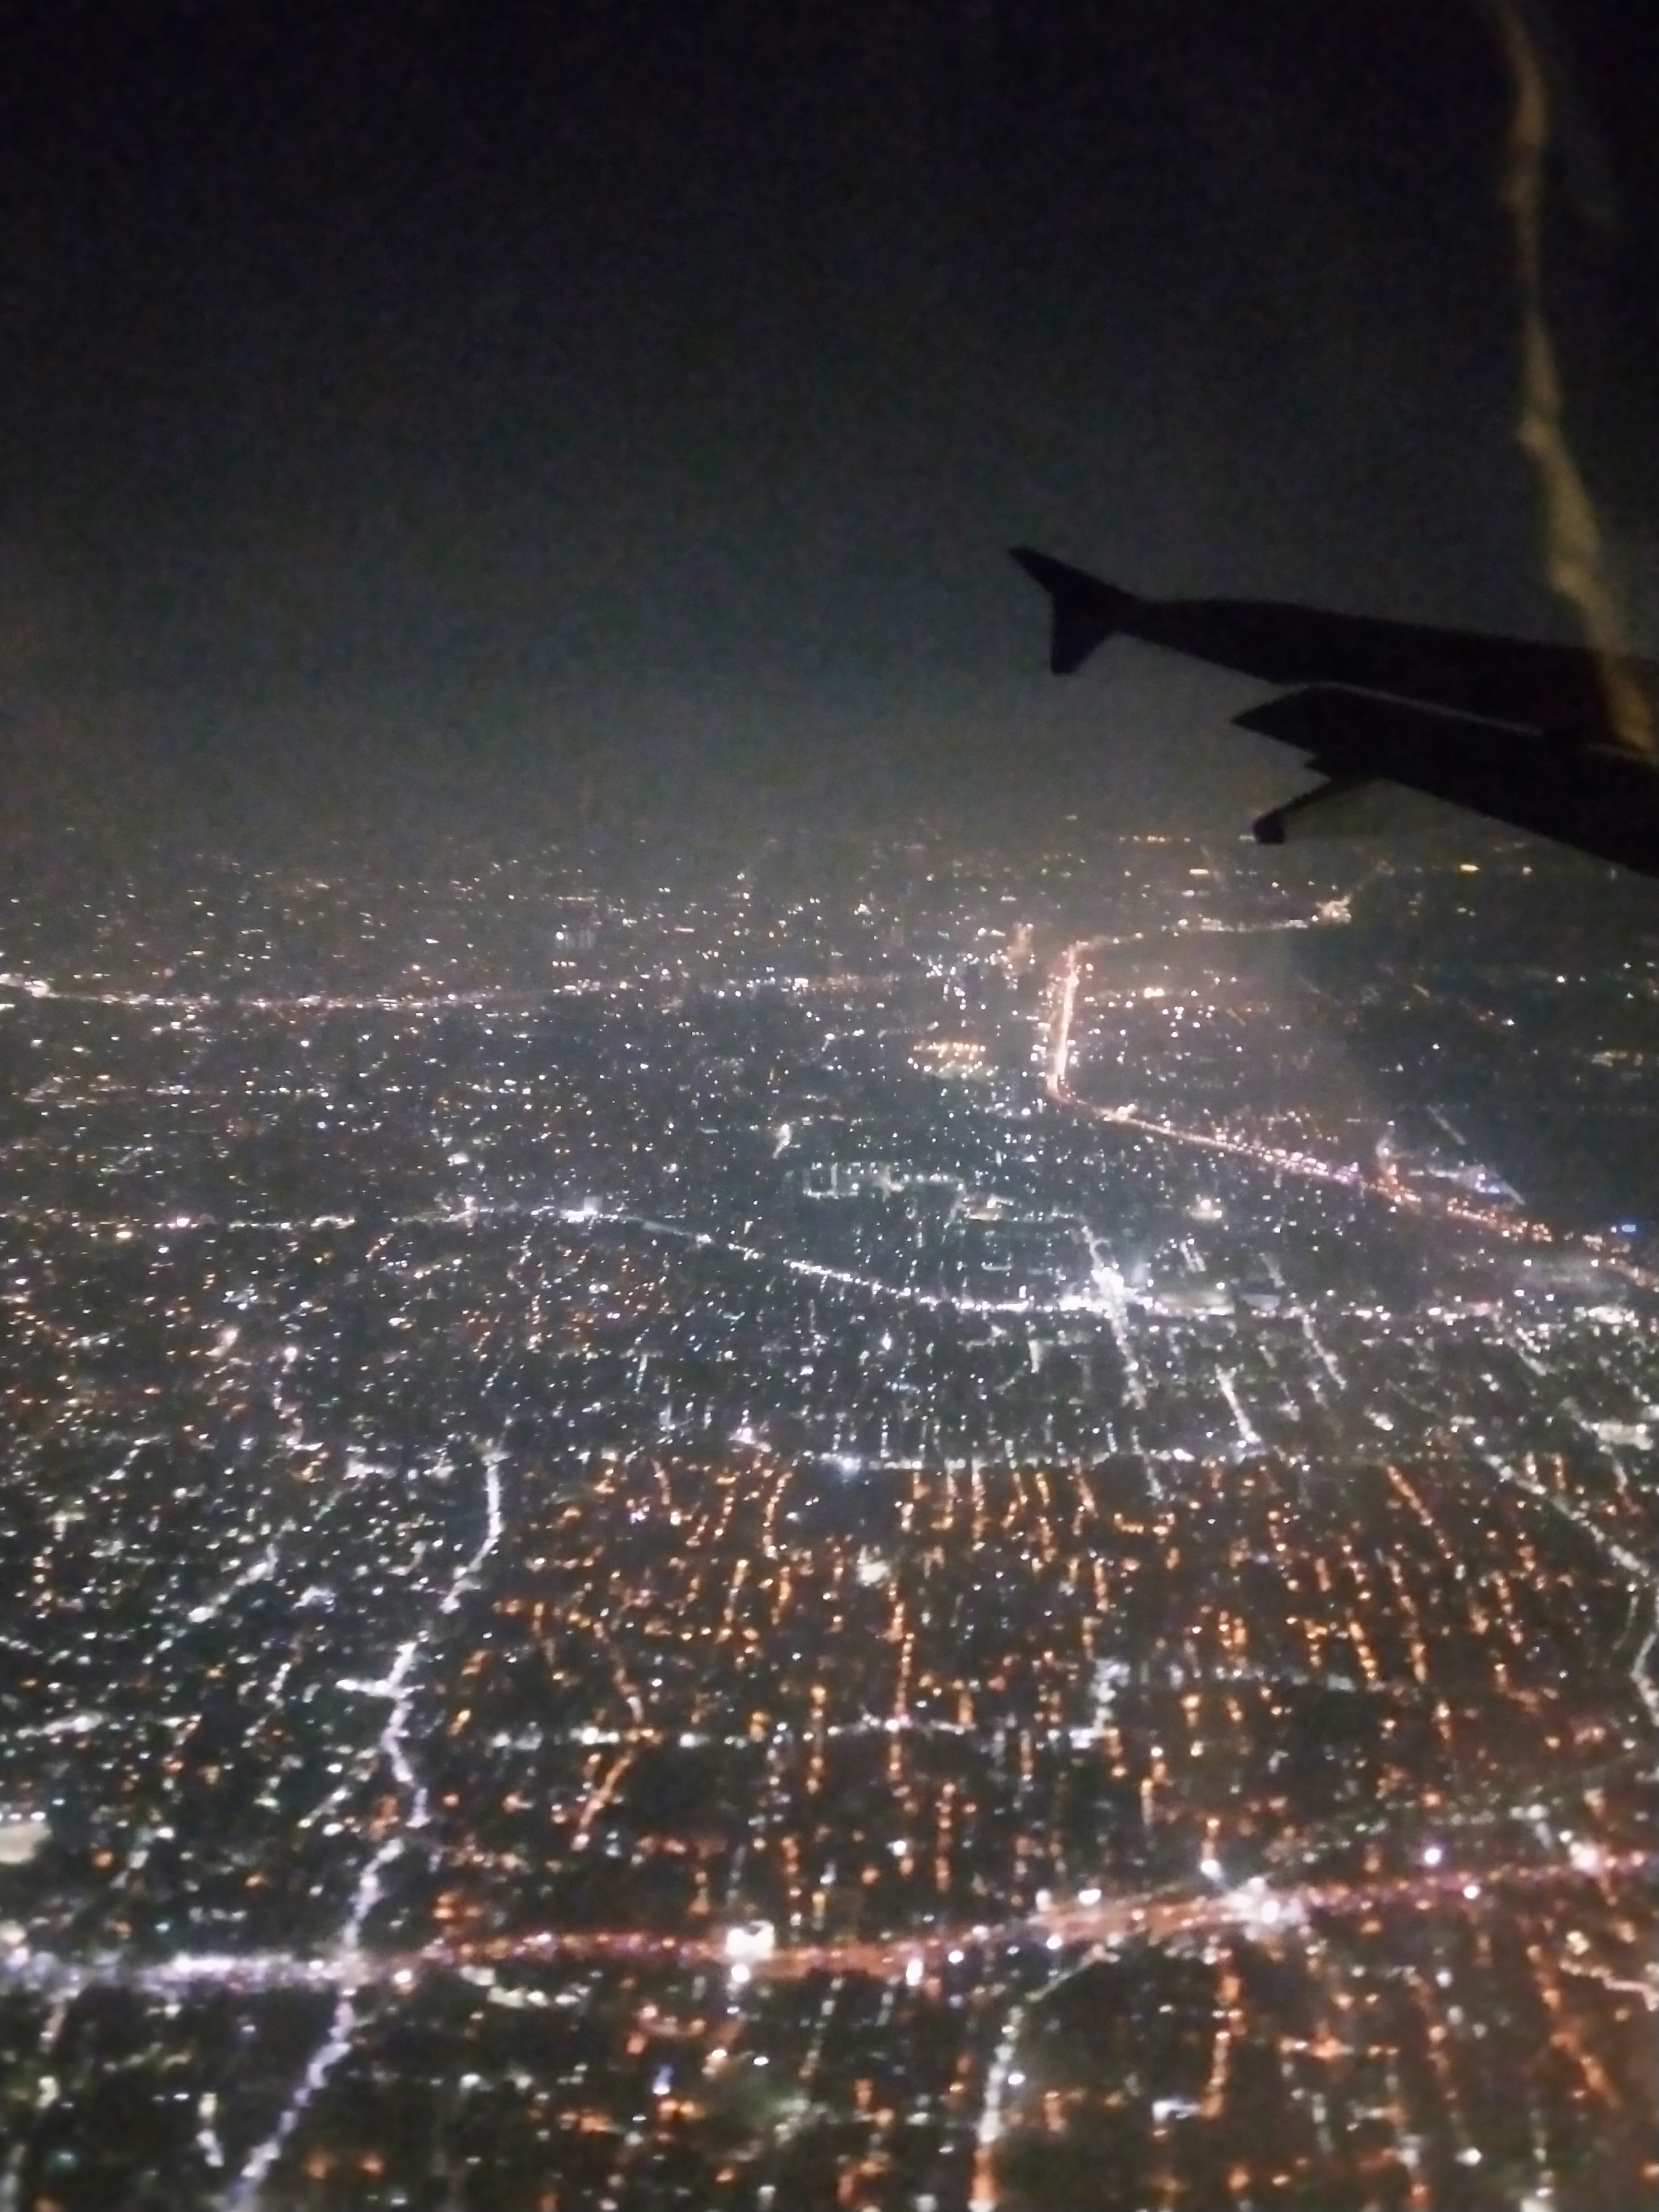 File Kolkata Outside View From Airplane Window At Night Jpg